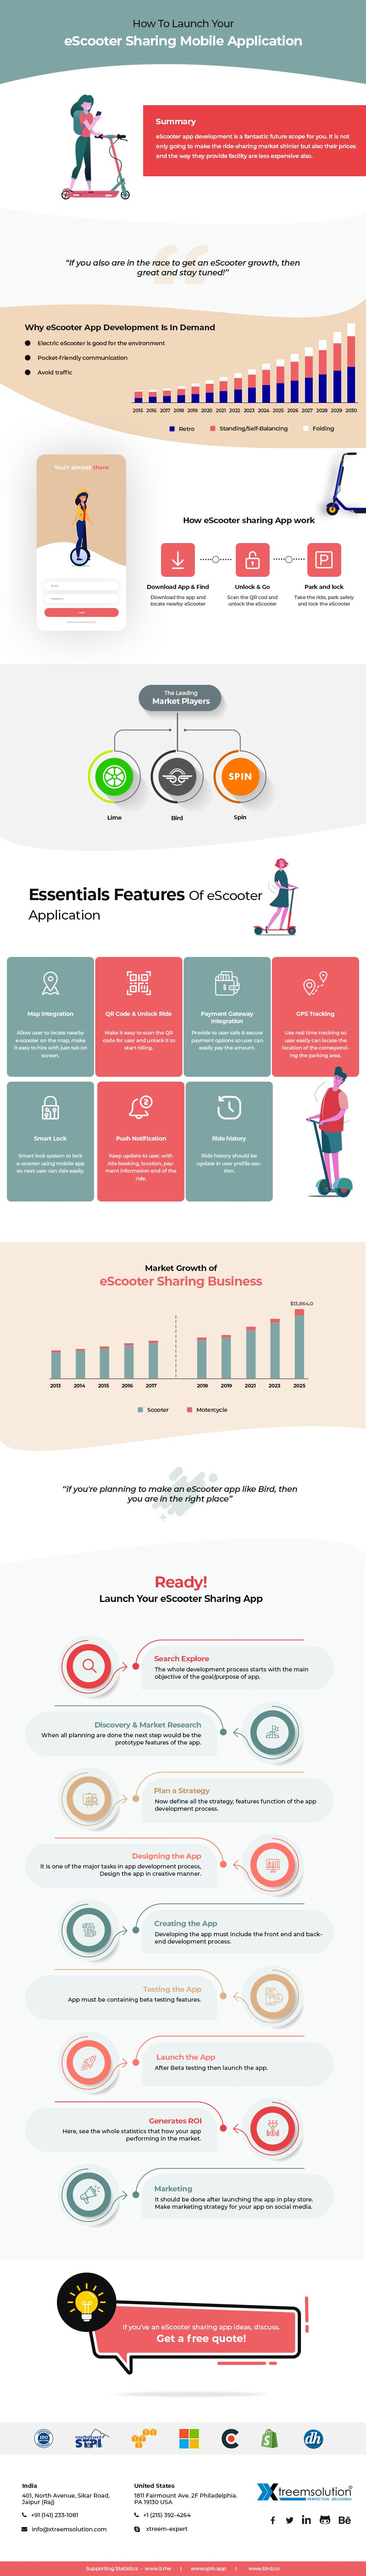 how to launch escooter sharing mobile app - How to launch eScooter sharing Mobile App like Bird/Lime/Spin/Tier